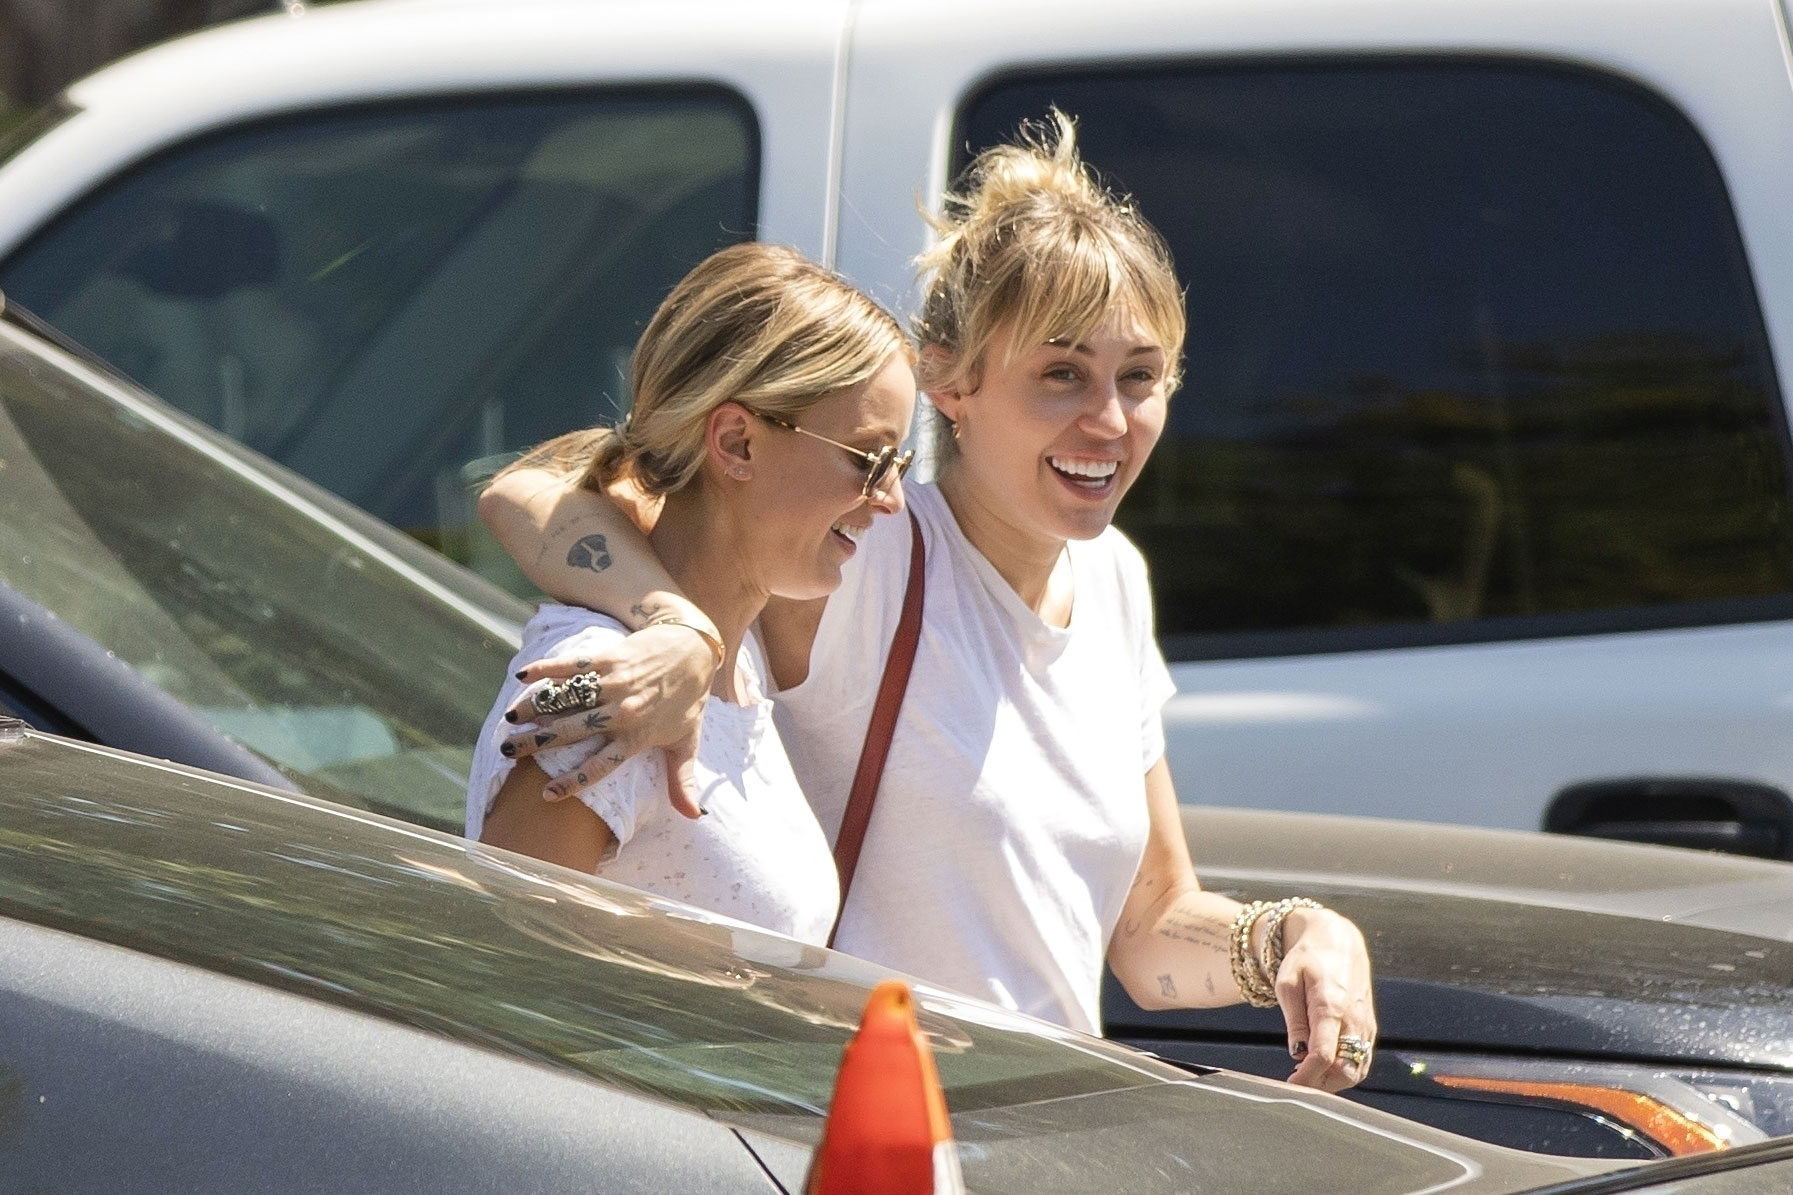 Miley Cyrus Gets Close With Kaitlynn Carter at Lunch Over Labor Day Weekend Wearing White Shirts